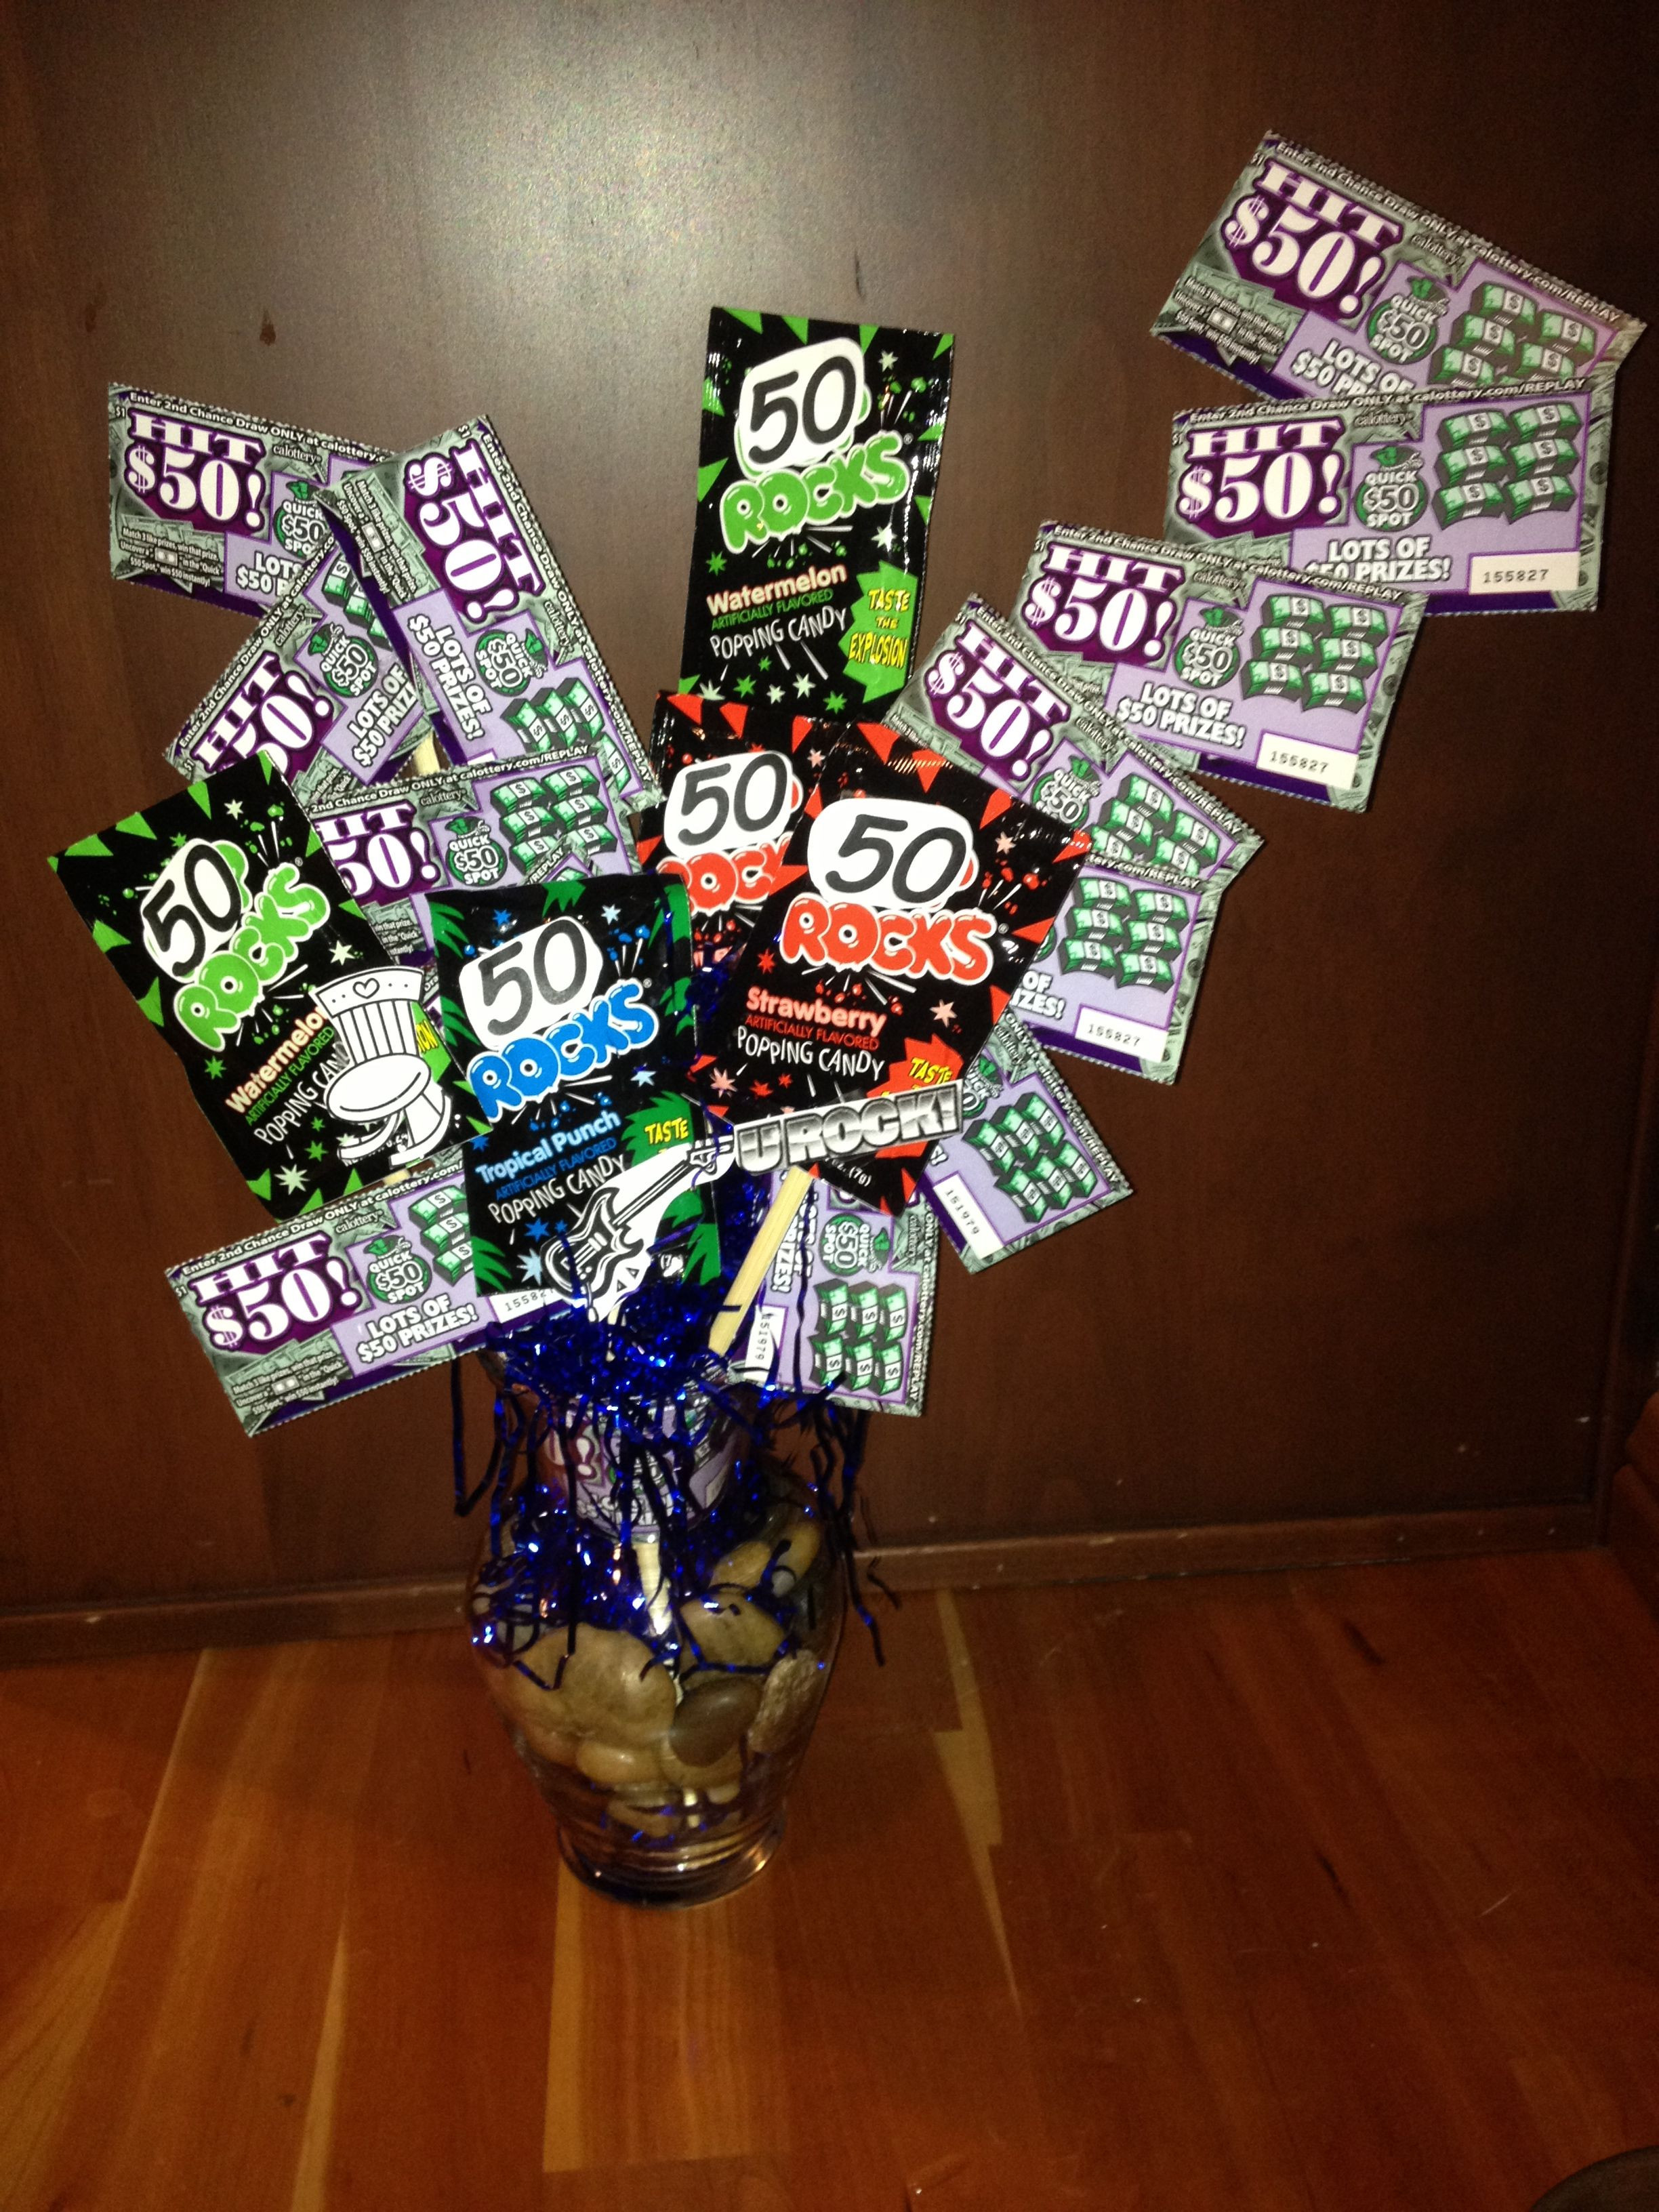 Best ideas about Gift Ideas For 50th Birthday . Save or Pin 50th Birthday Gift Ideas DIY Crafty Projects Now.